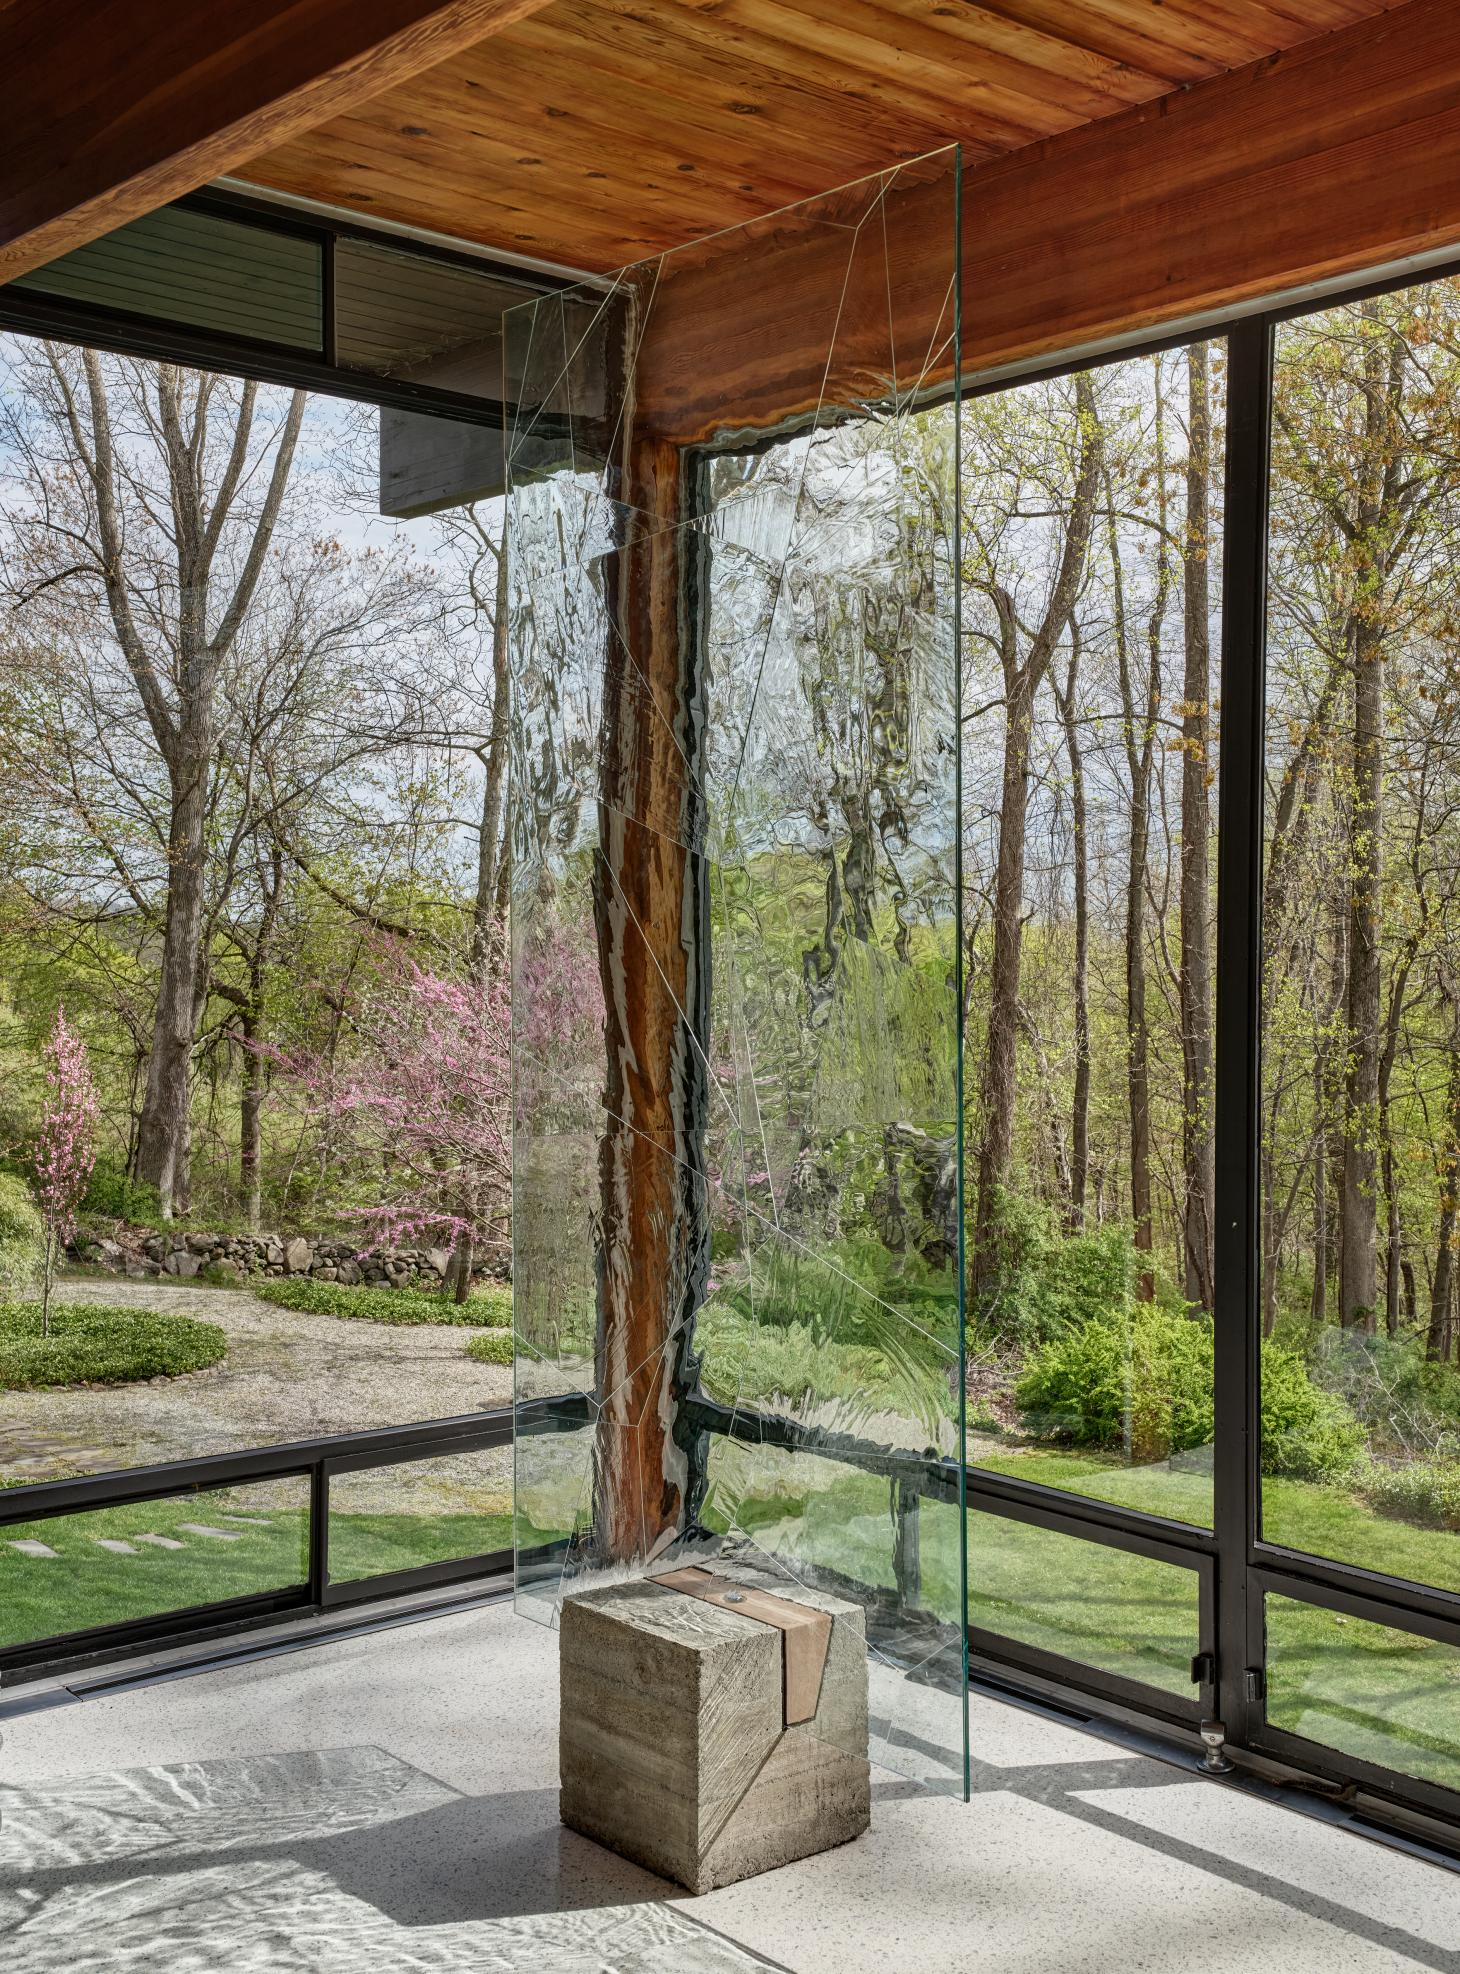 Interior shot of house by Gerald Luss with glass and steel details and terrazzo floor furnished with metal table